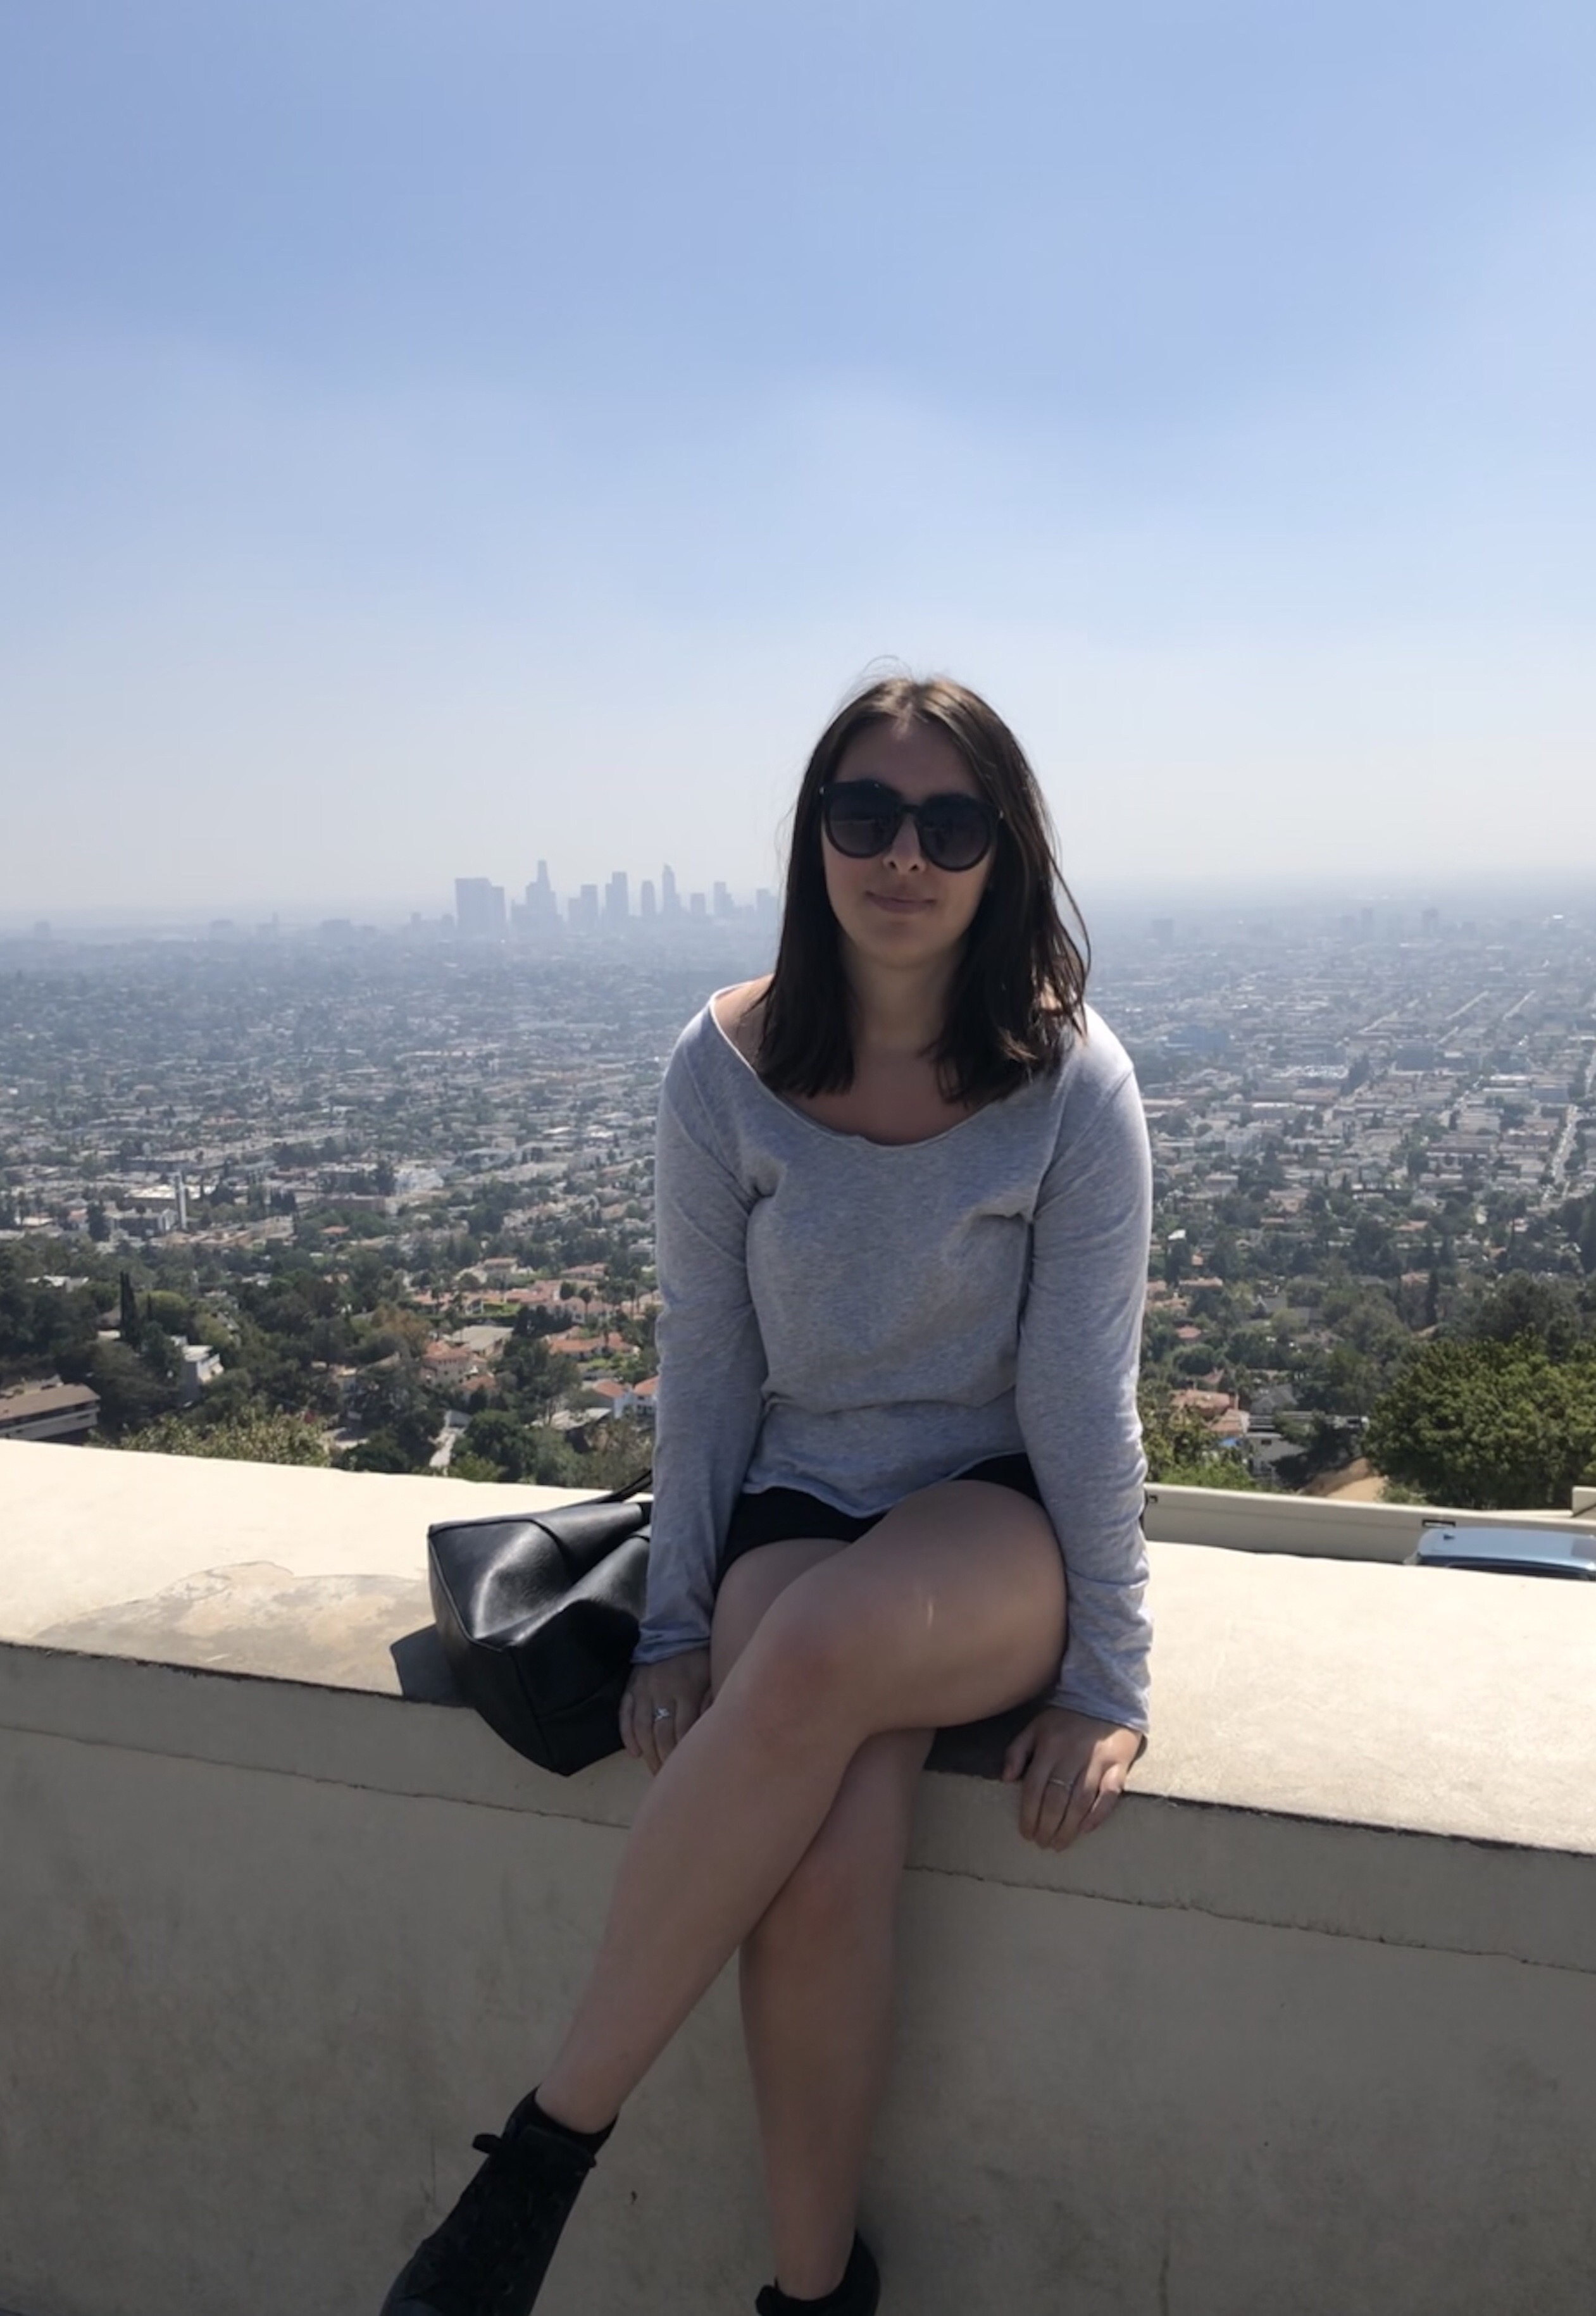 Lauren at the Griffith Observatory